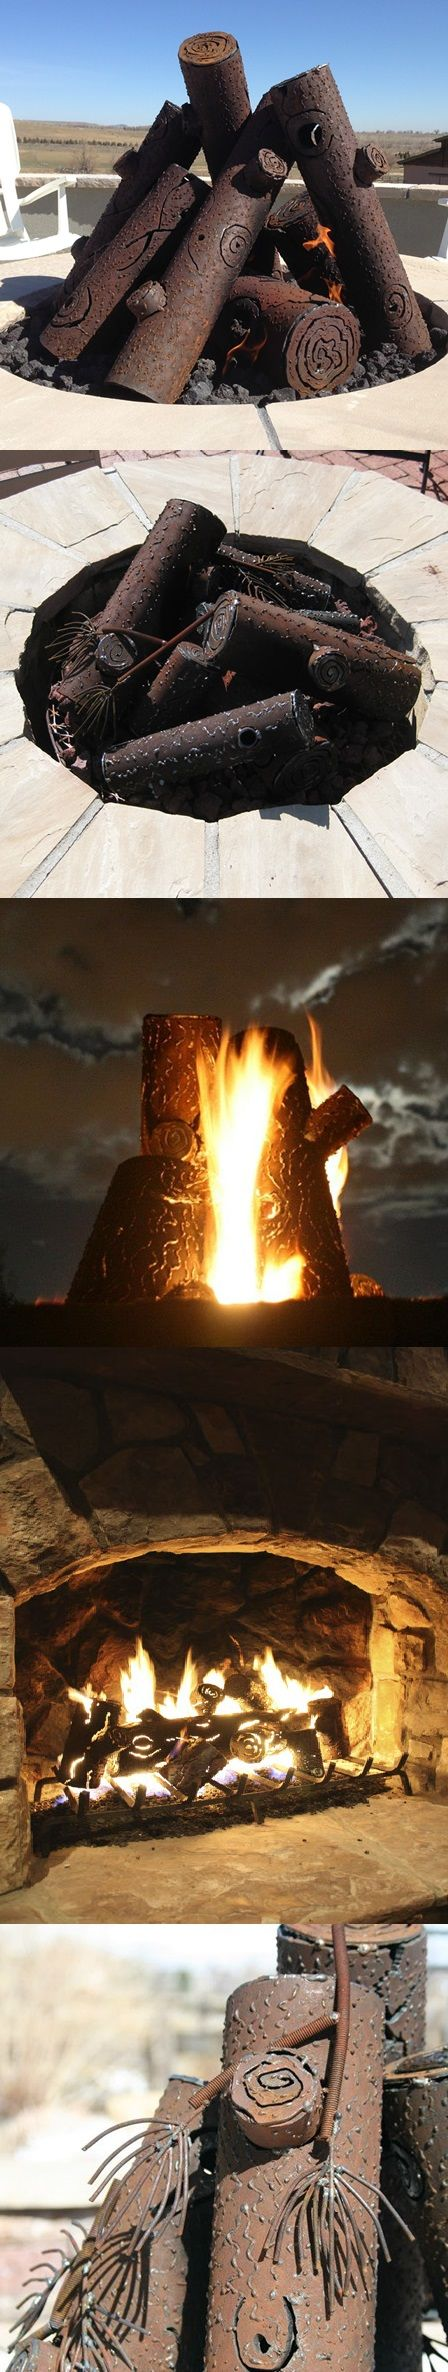 Hand-crafted steel log sets absorb and radiate heat in your fire pit/outdoor fireplace. Natural age and rust brings about a more natural look over time. Plus, they are beautiful pieces of craftsmanship in their own right! | TimberCraft Metal Art outdoor steel log sets.